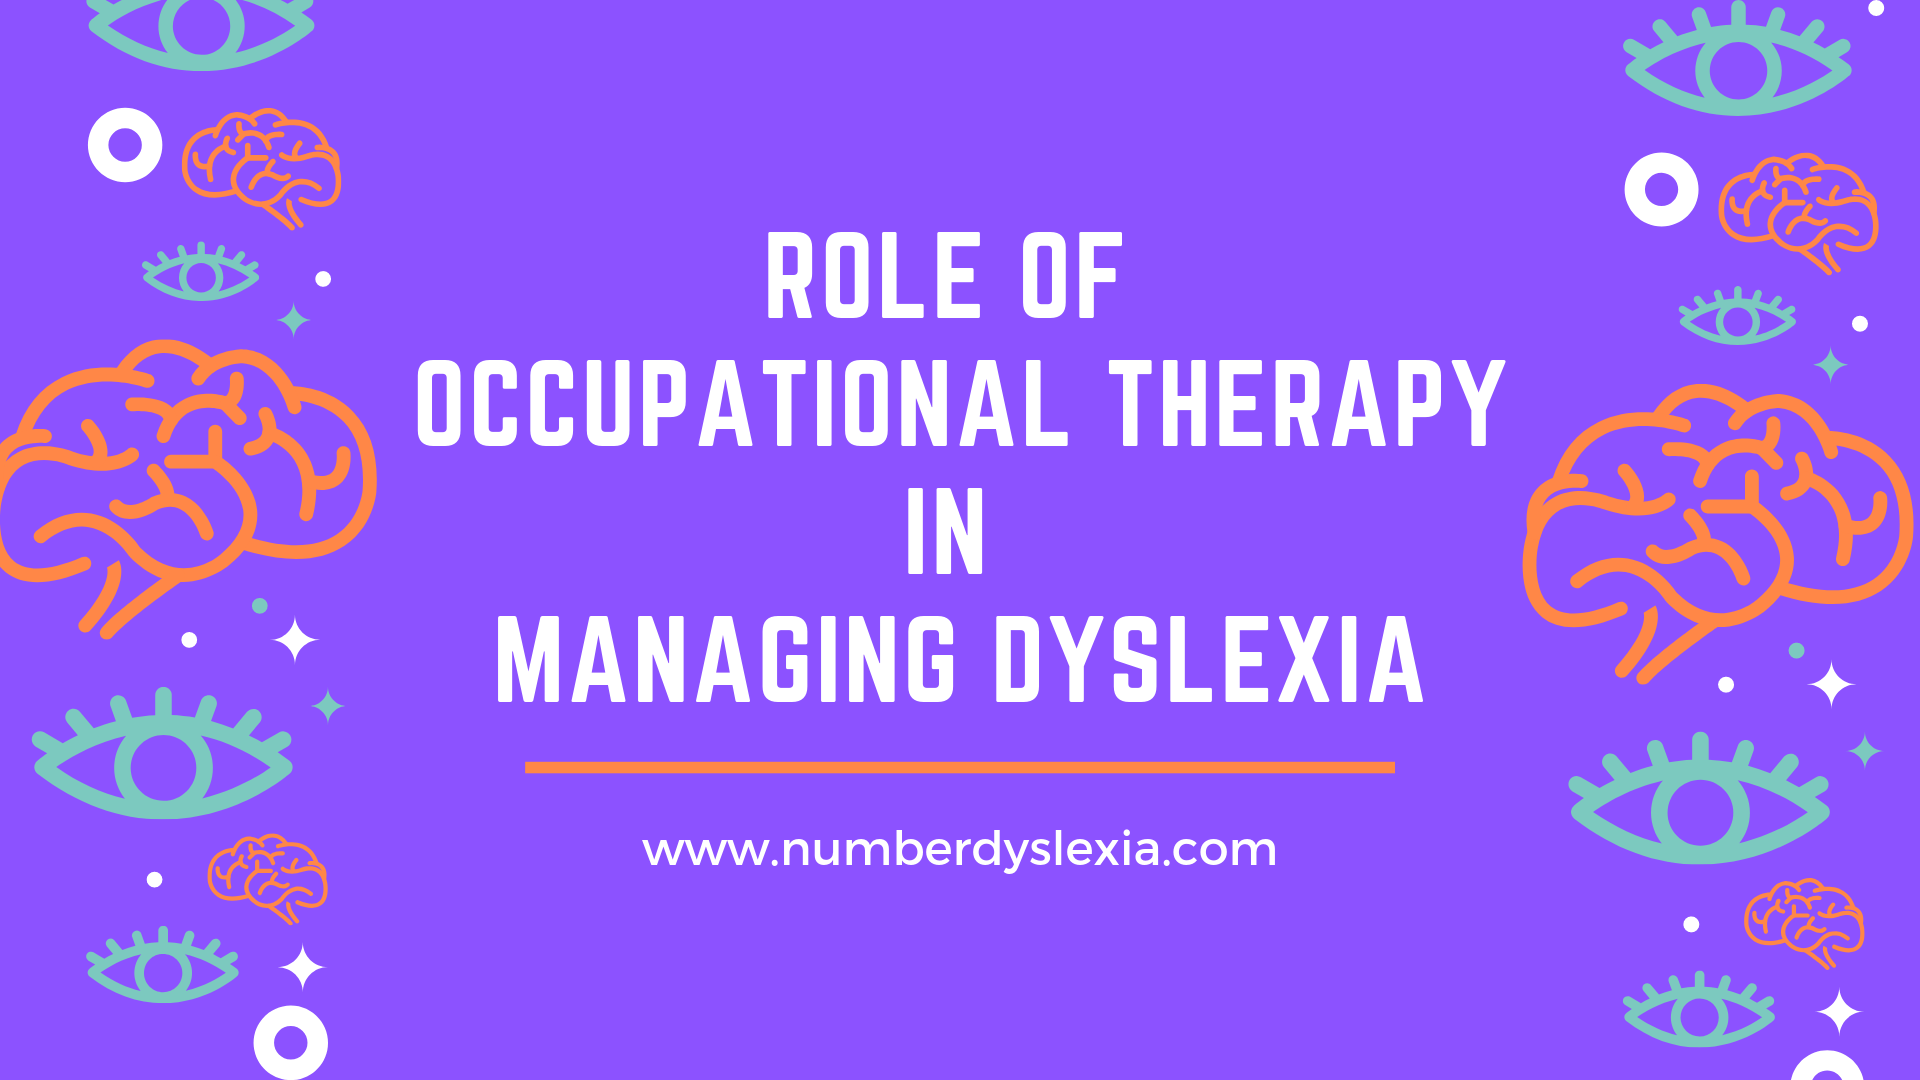 Role of Occupational Therapy in Managing Dyslexia